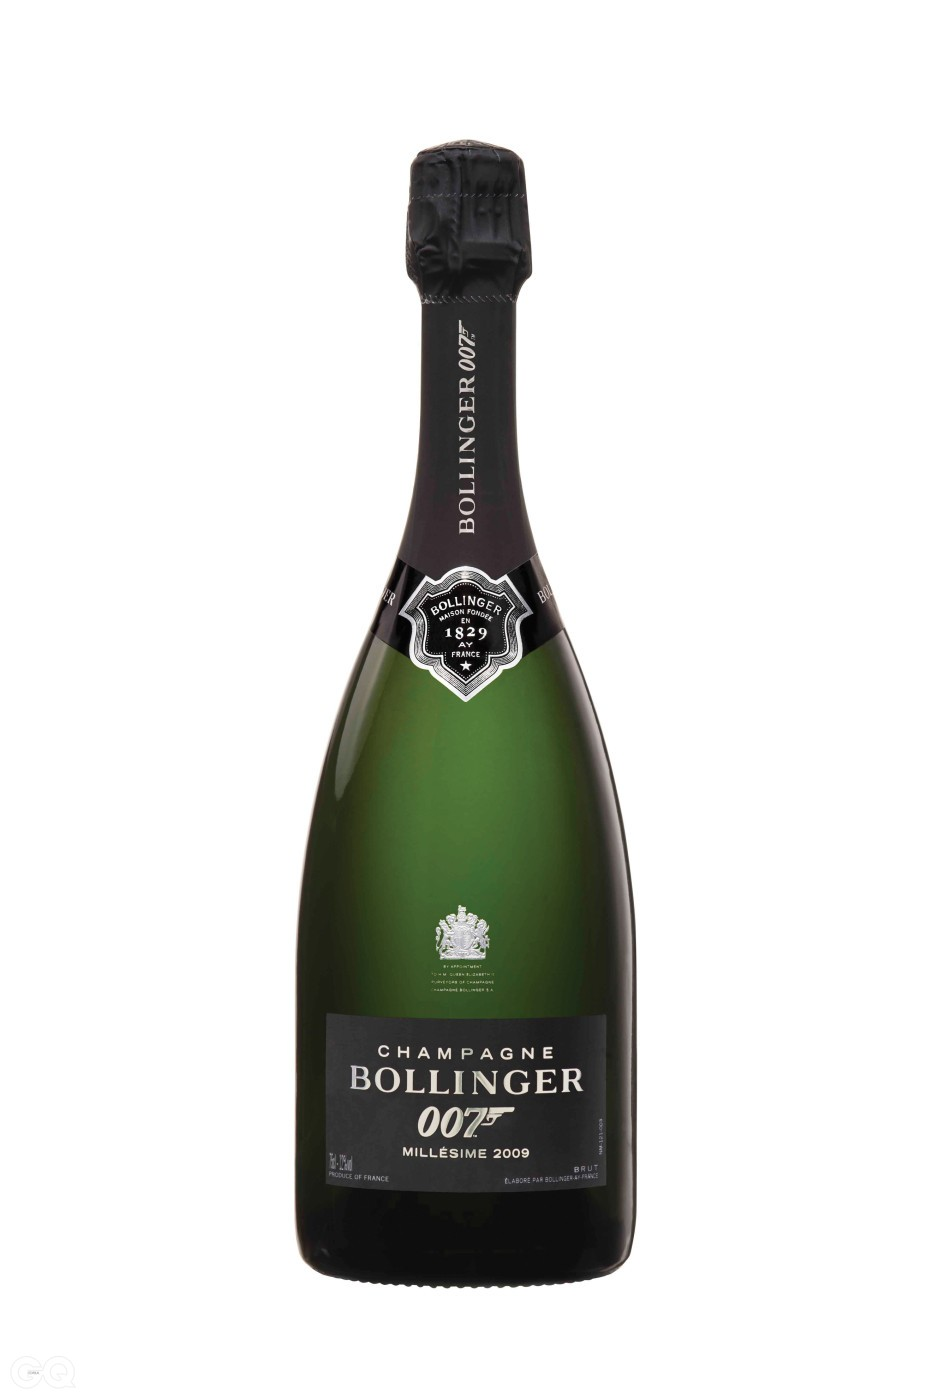 BOLLINGER SPECTRE LIMITED EDITION 병 사진